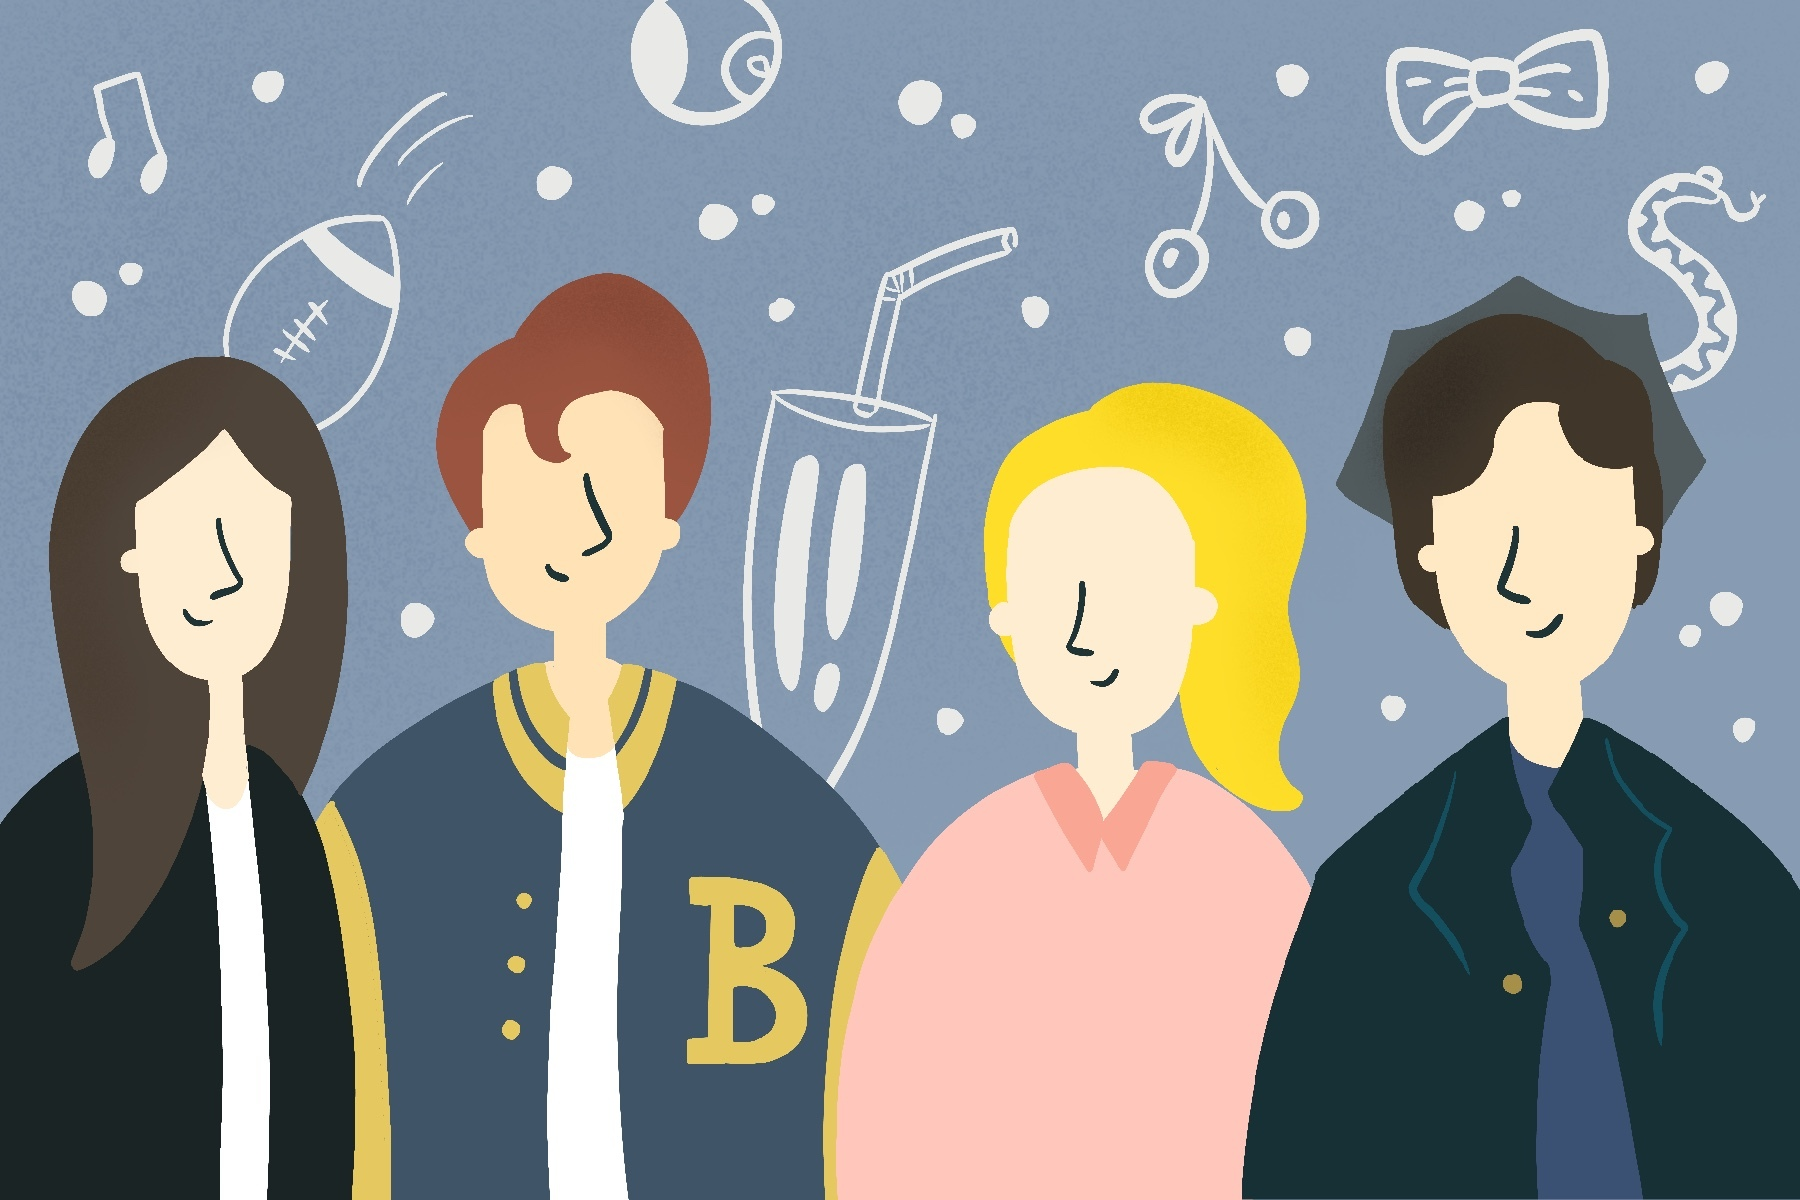 Illustration by Sonja Vasiljeva for an article on Riverdale